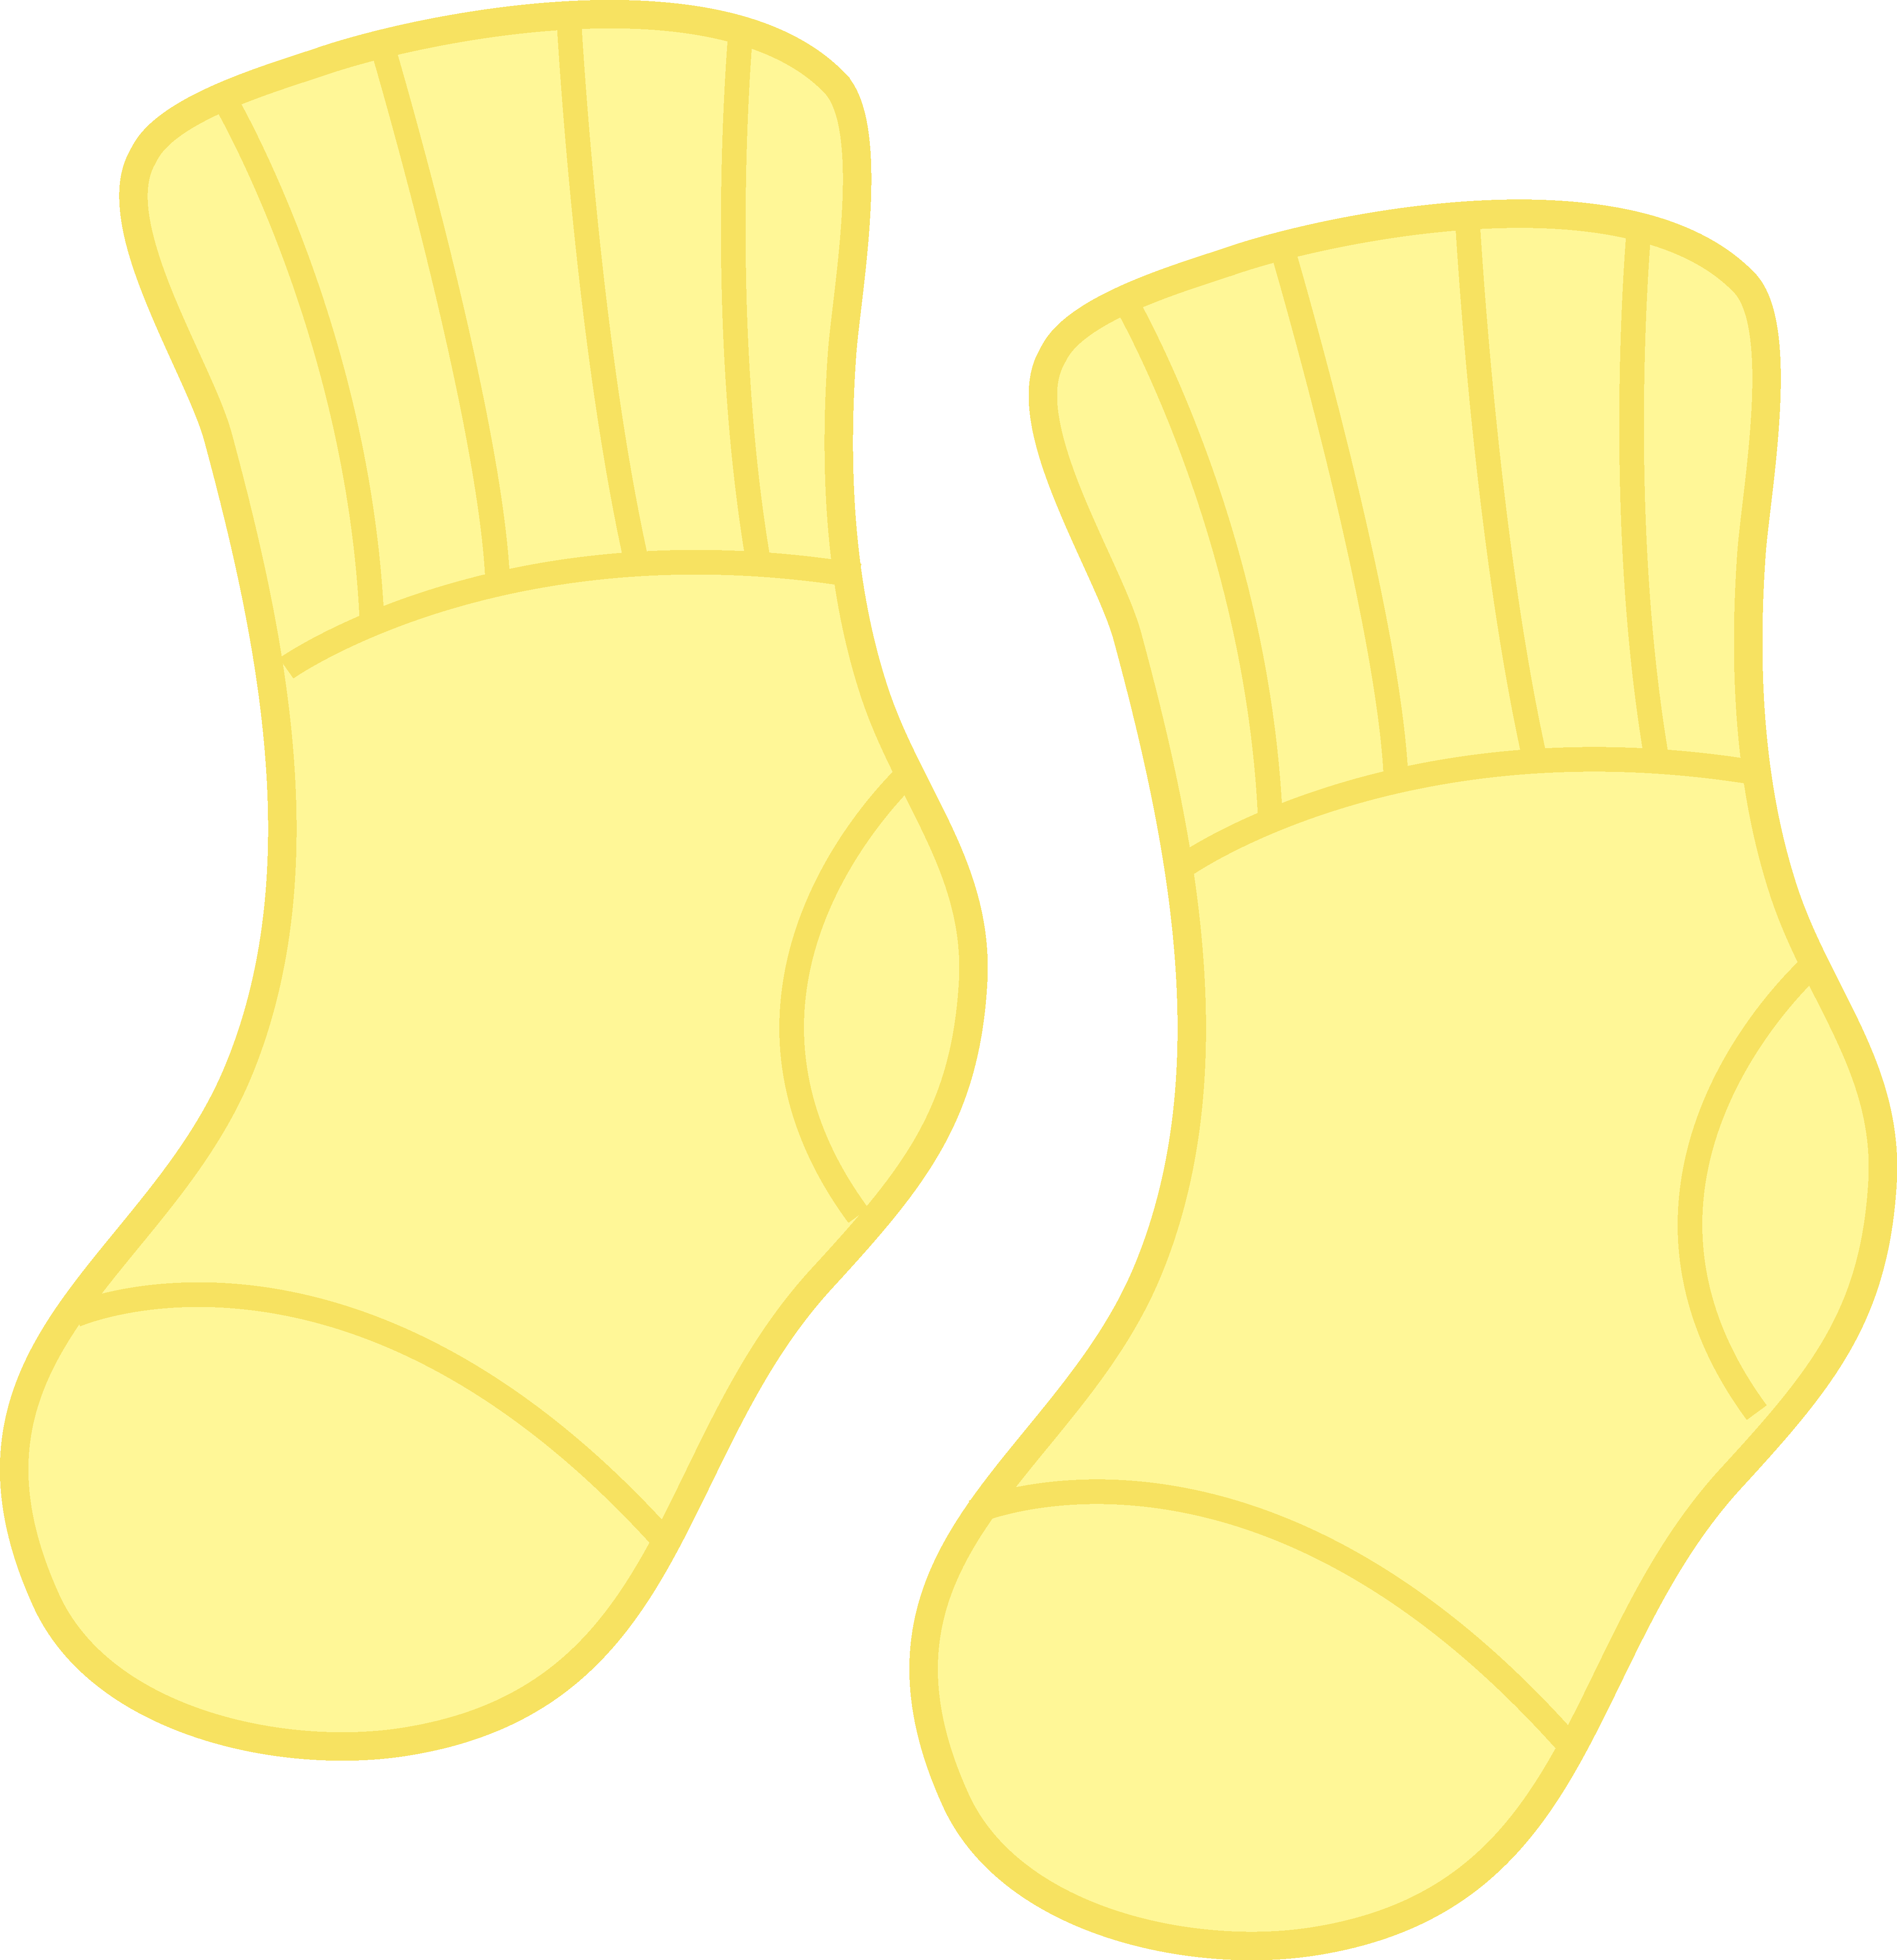 Baby clipartuse yellow. Clipart socks pile